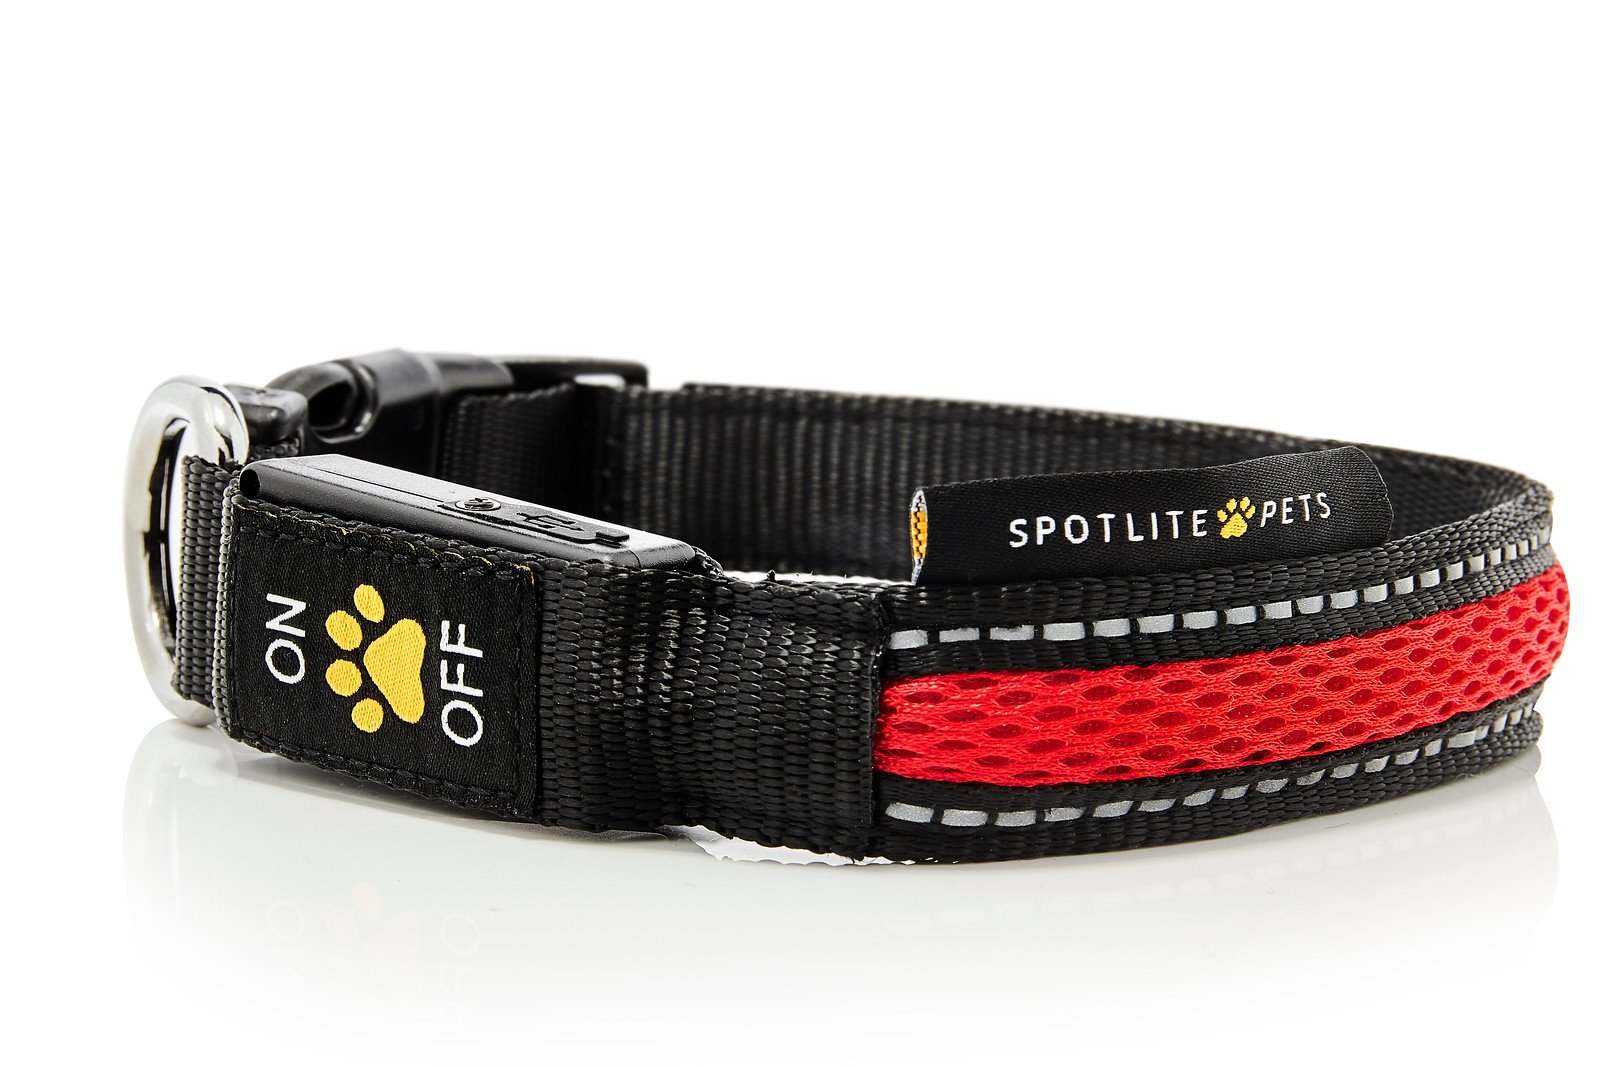 Red_Collars_Leashes_Spotlite_Pets-X3.jpg